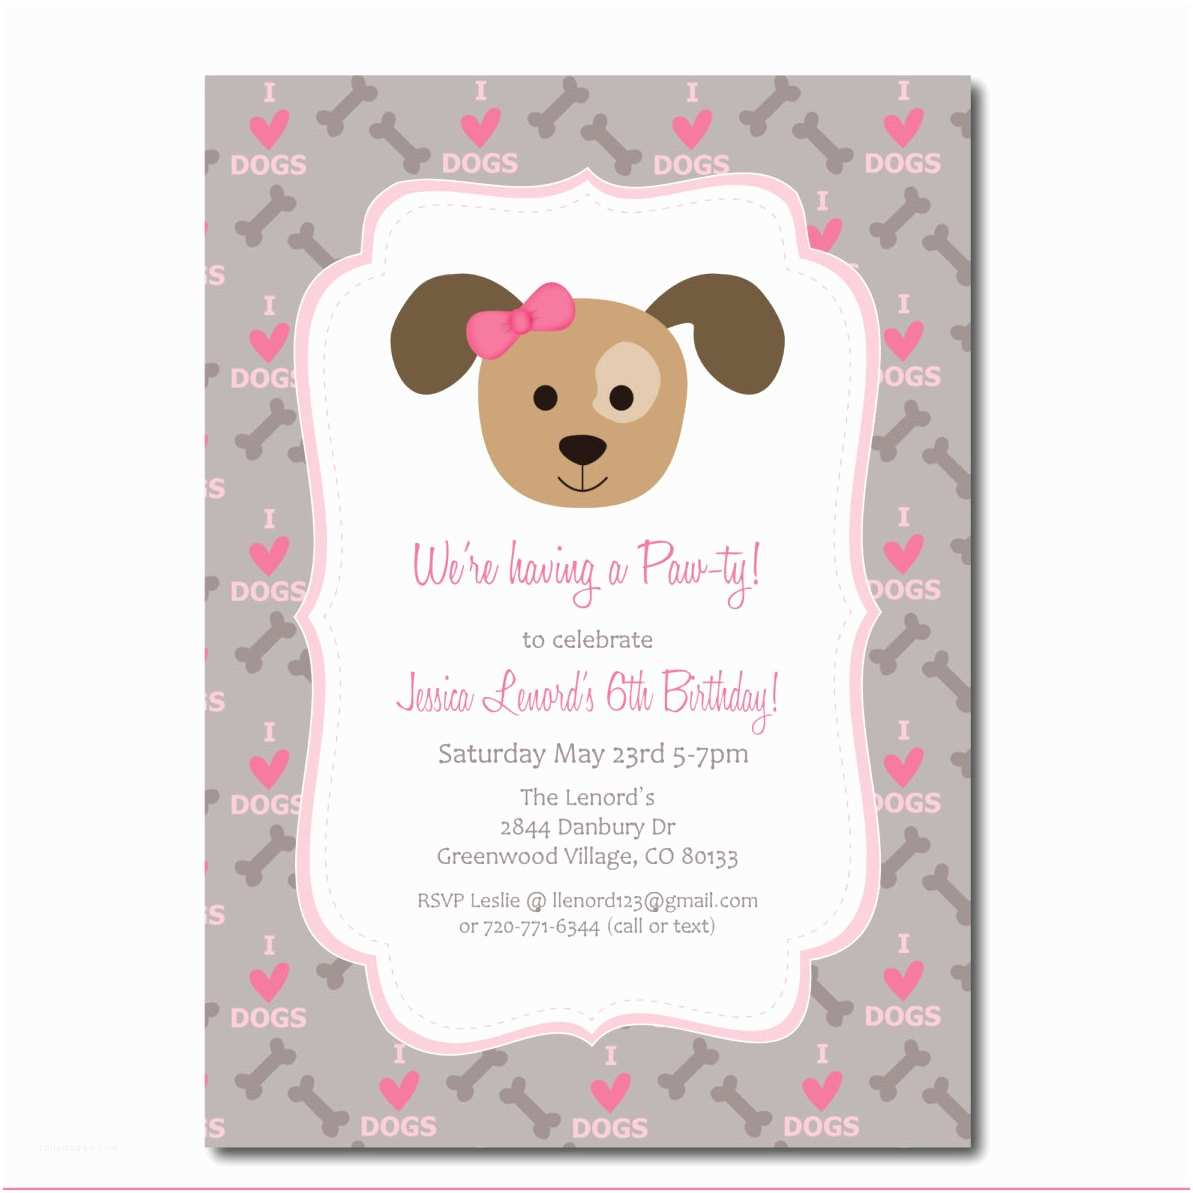 Dog Birthday Invitations Puppy Party Invitation with Editable Text Dog Party